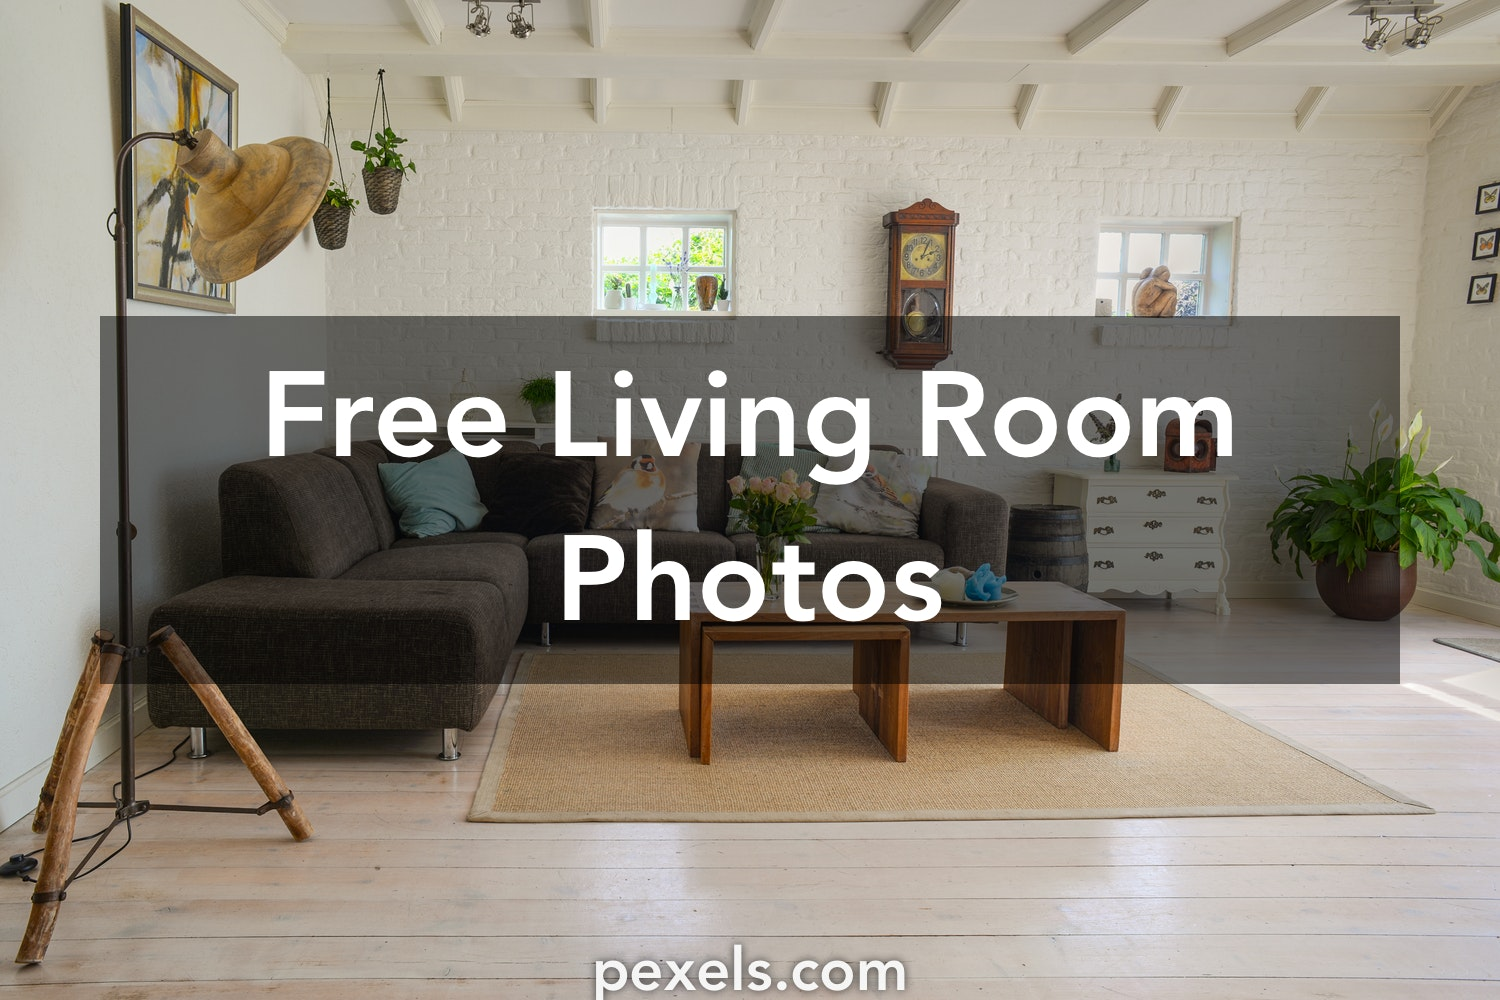 Free Stock Photos Of Living Room · Pexels